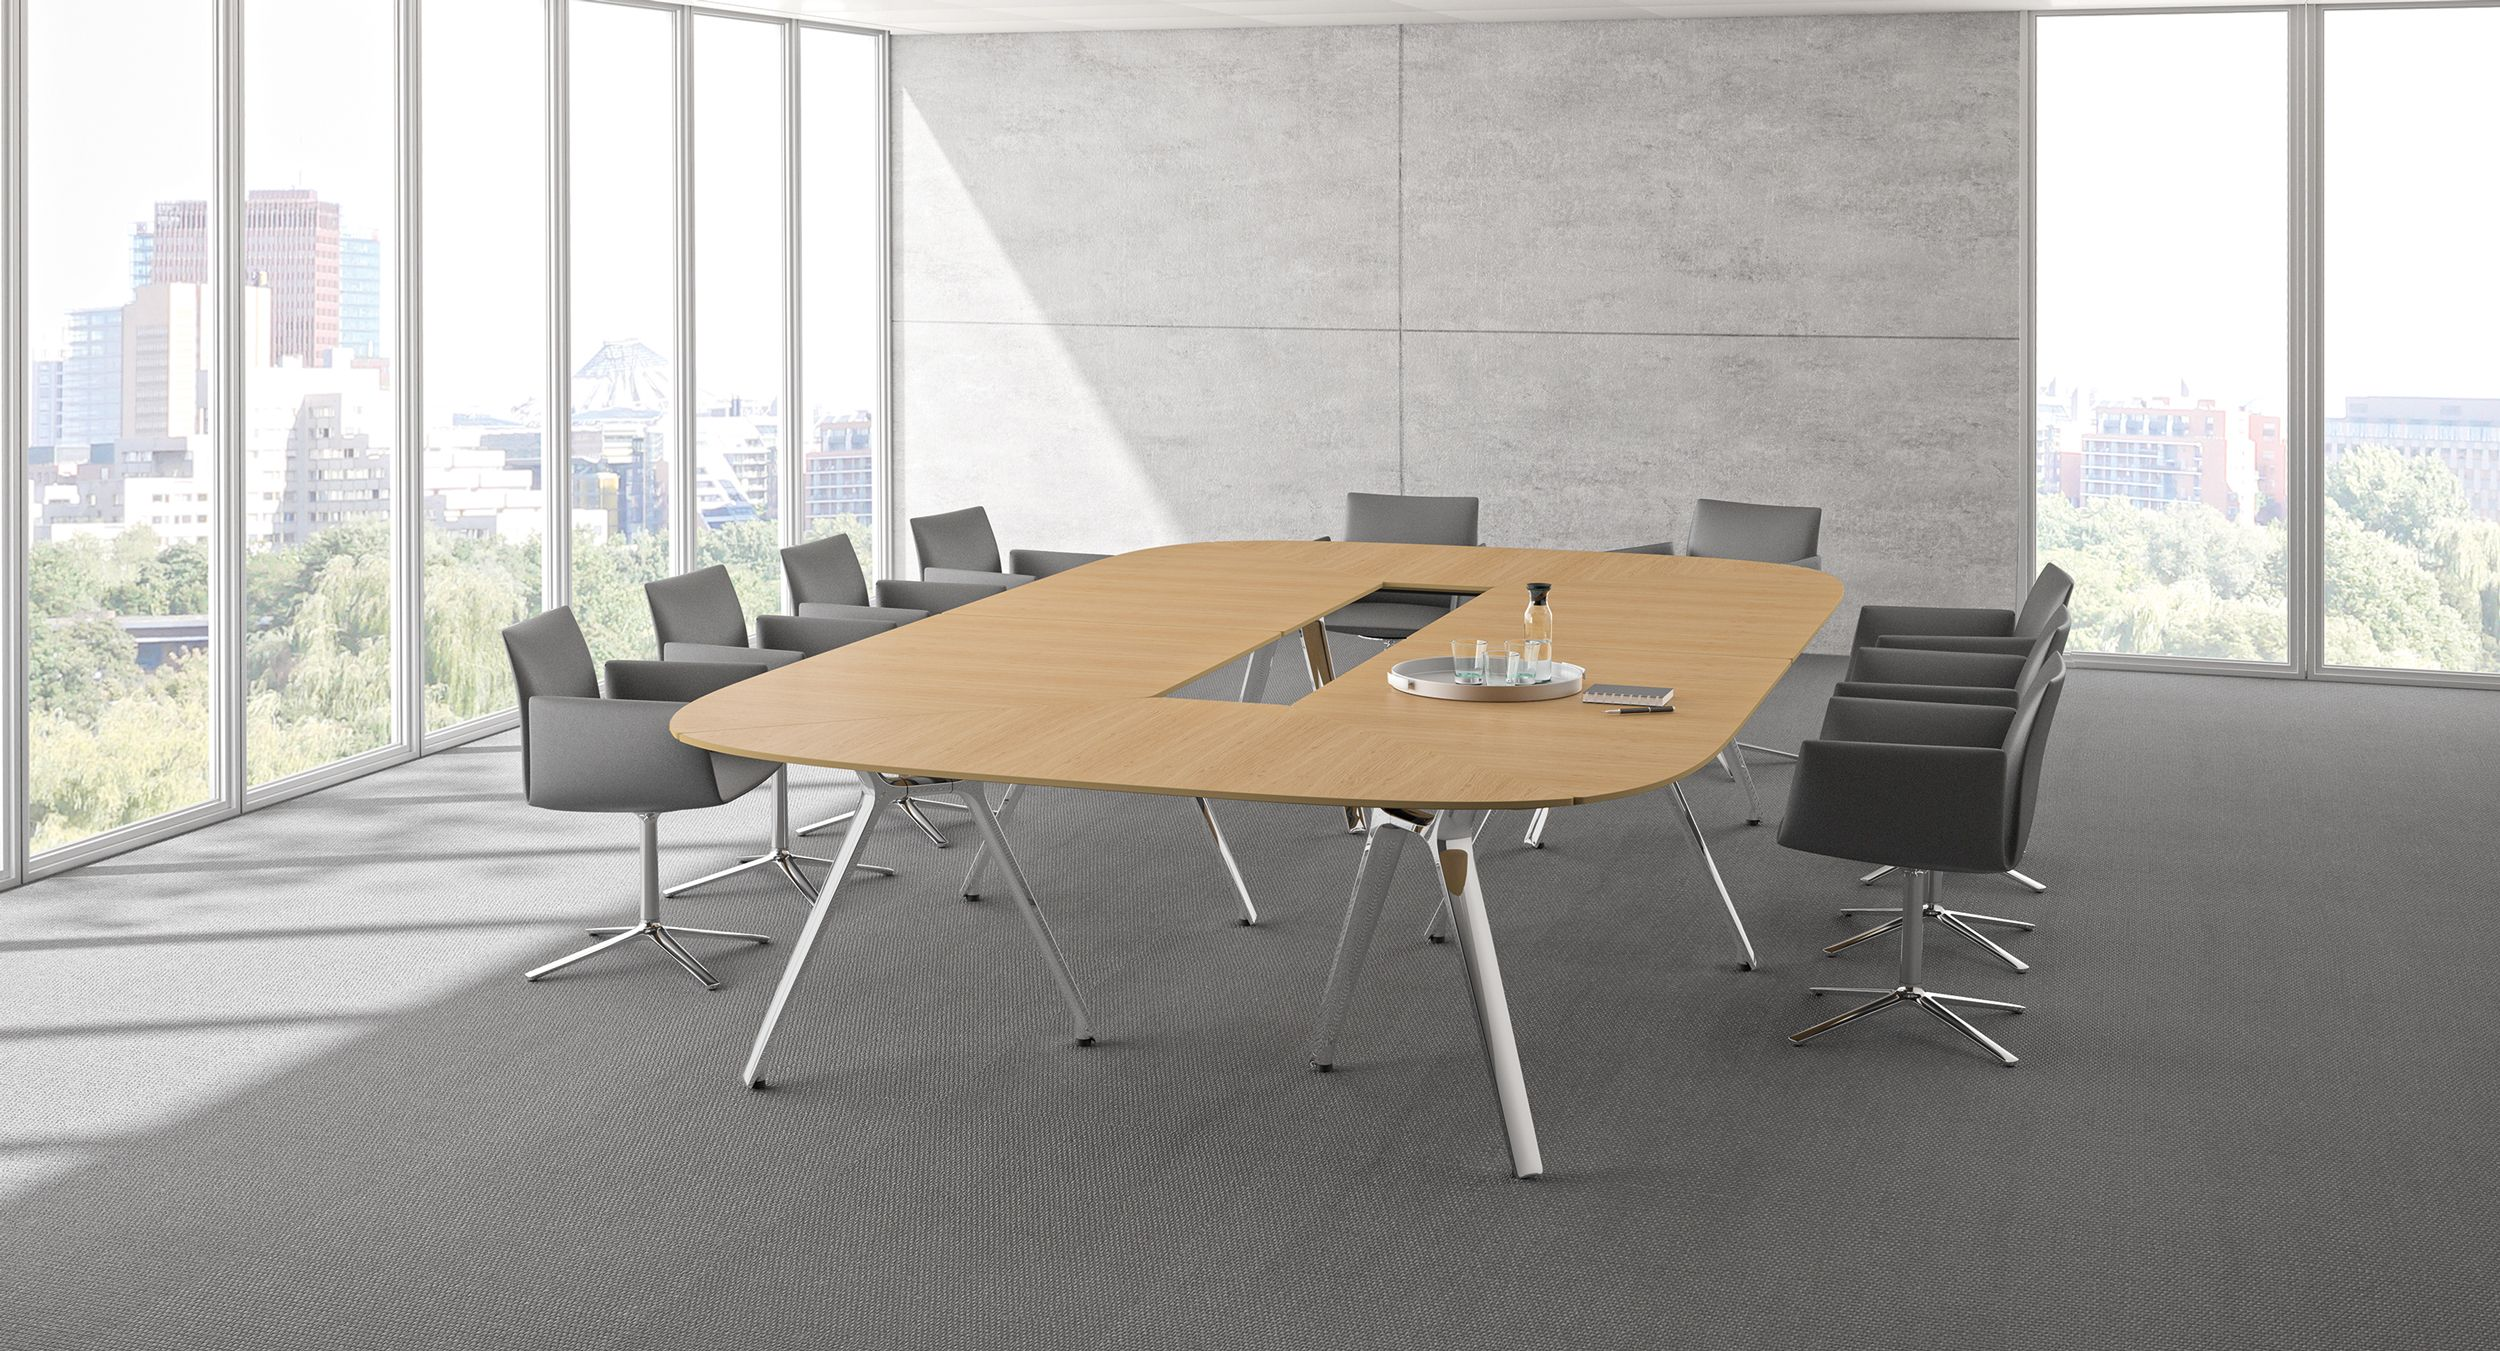 STRATOS pairs modern, timeless design with a flexible, parametric system to create table solutions of any size and shape.